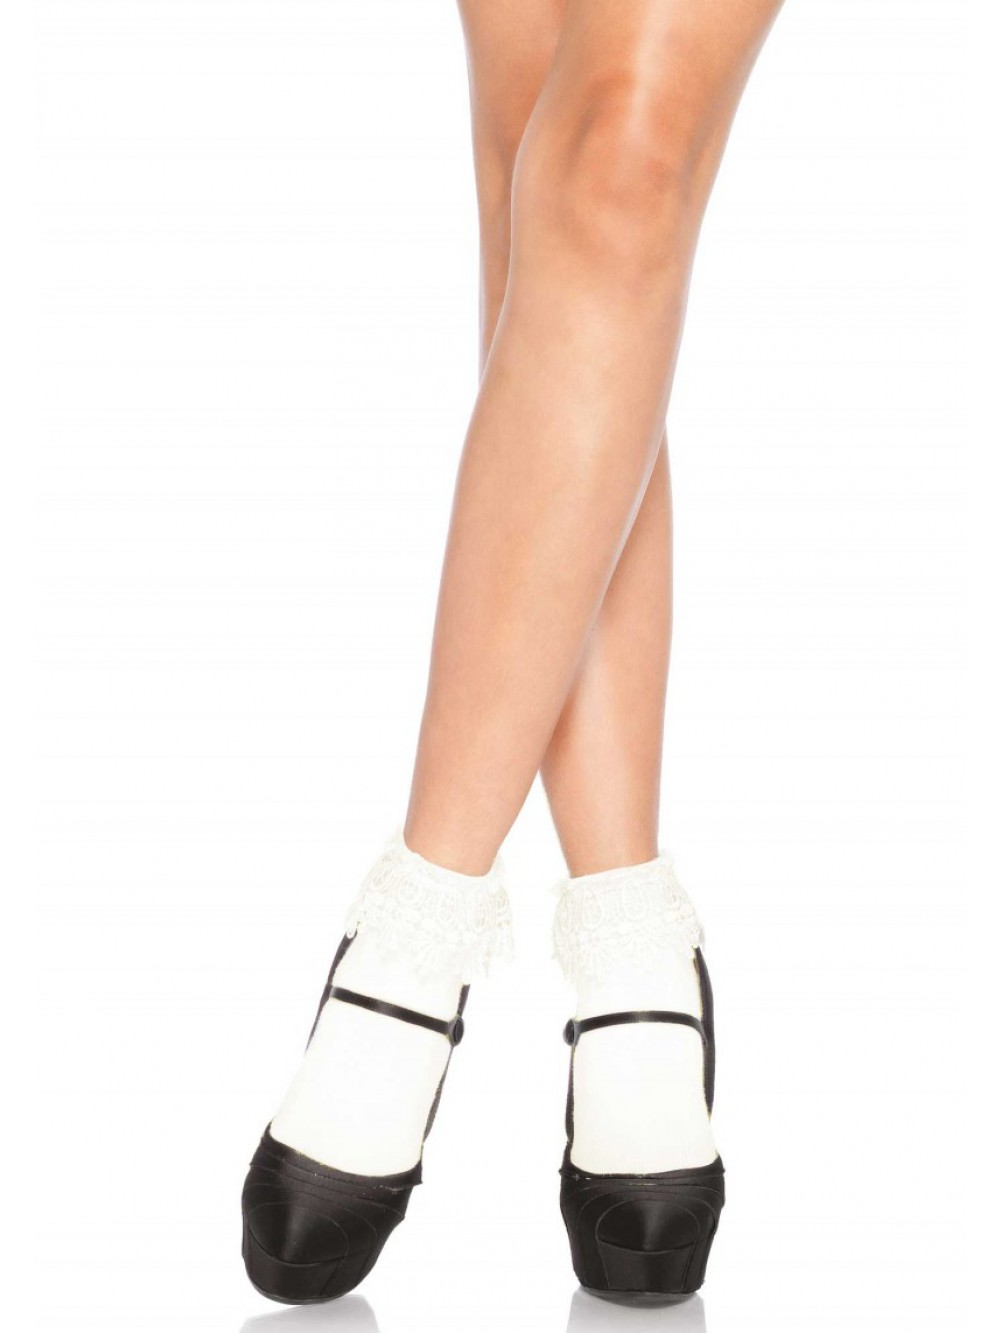 ANKLE HIGHS WITH LACE TOP WHITE 0714718503530